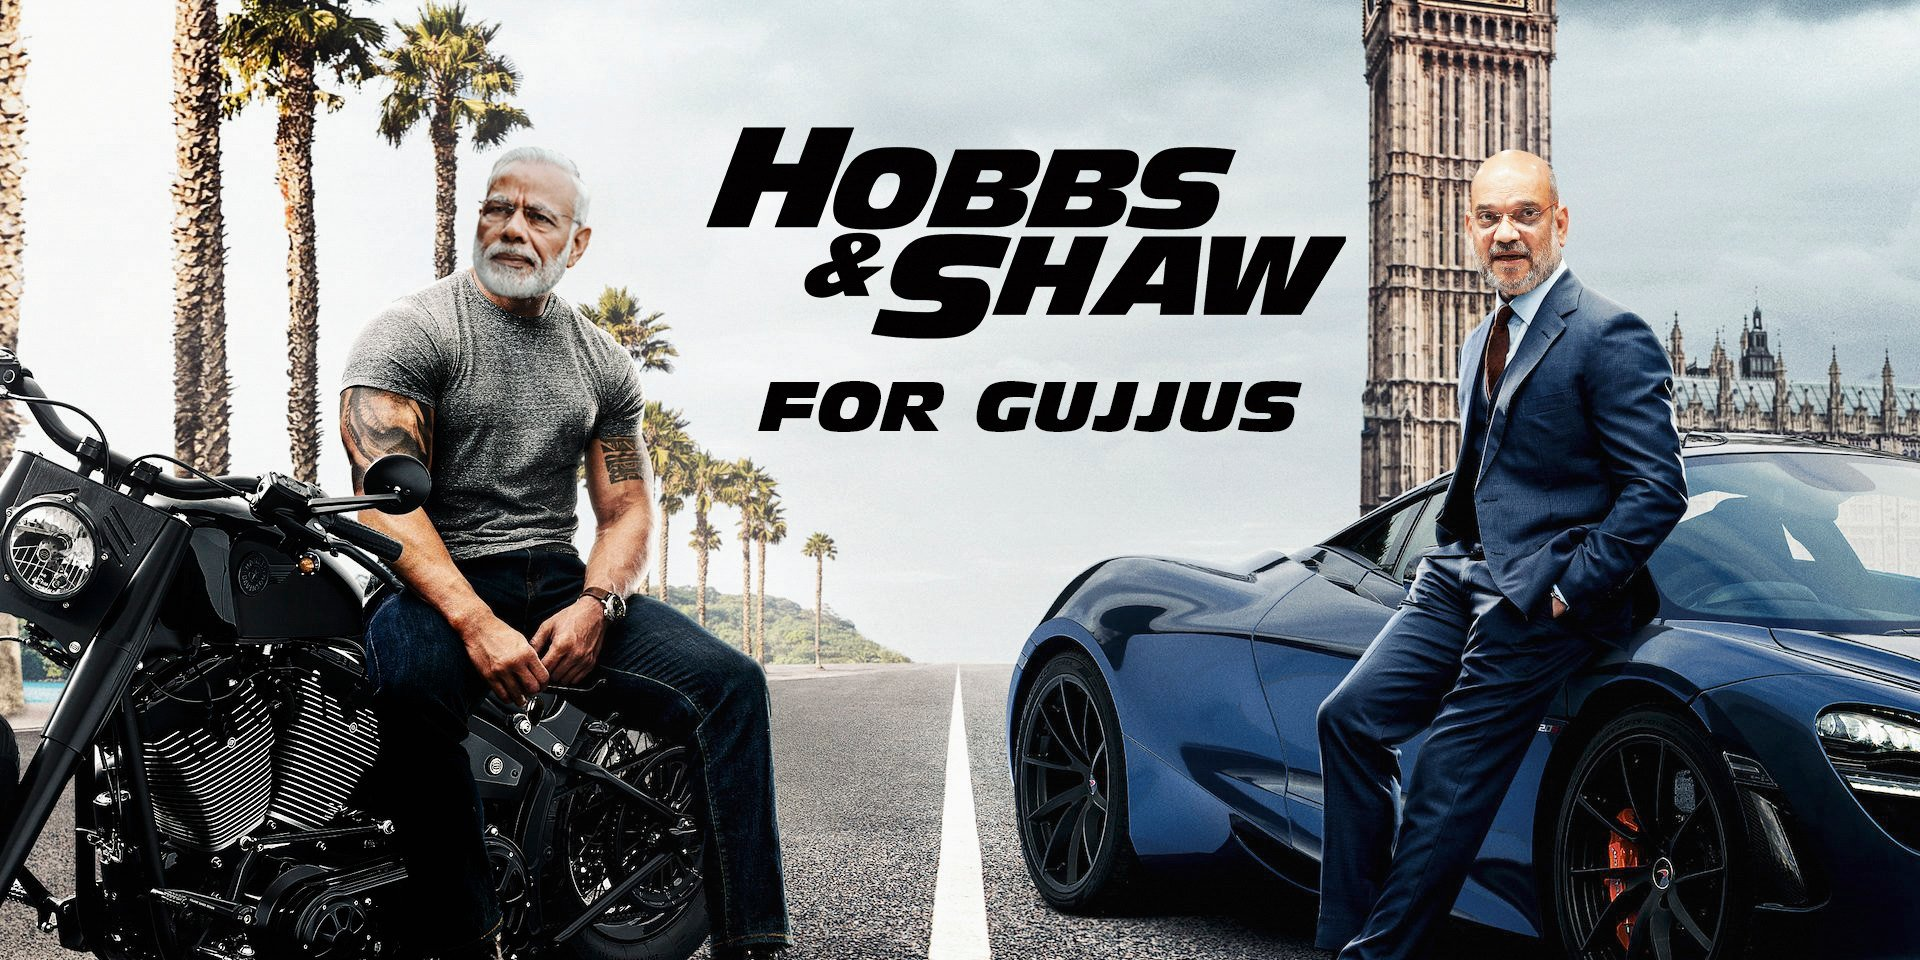 Manan Desai & his Alter Ego watched Hobbs & Shaw, and they are back with another Gujju Review!